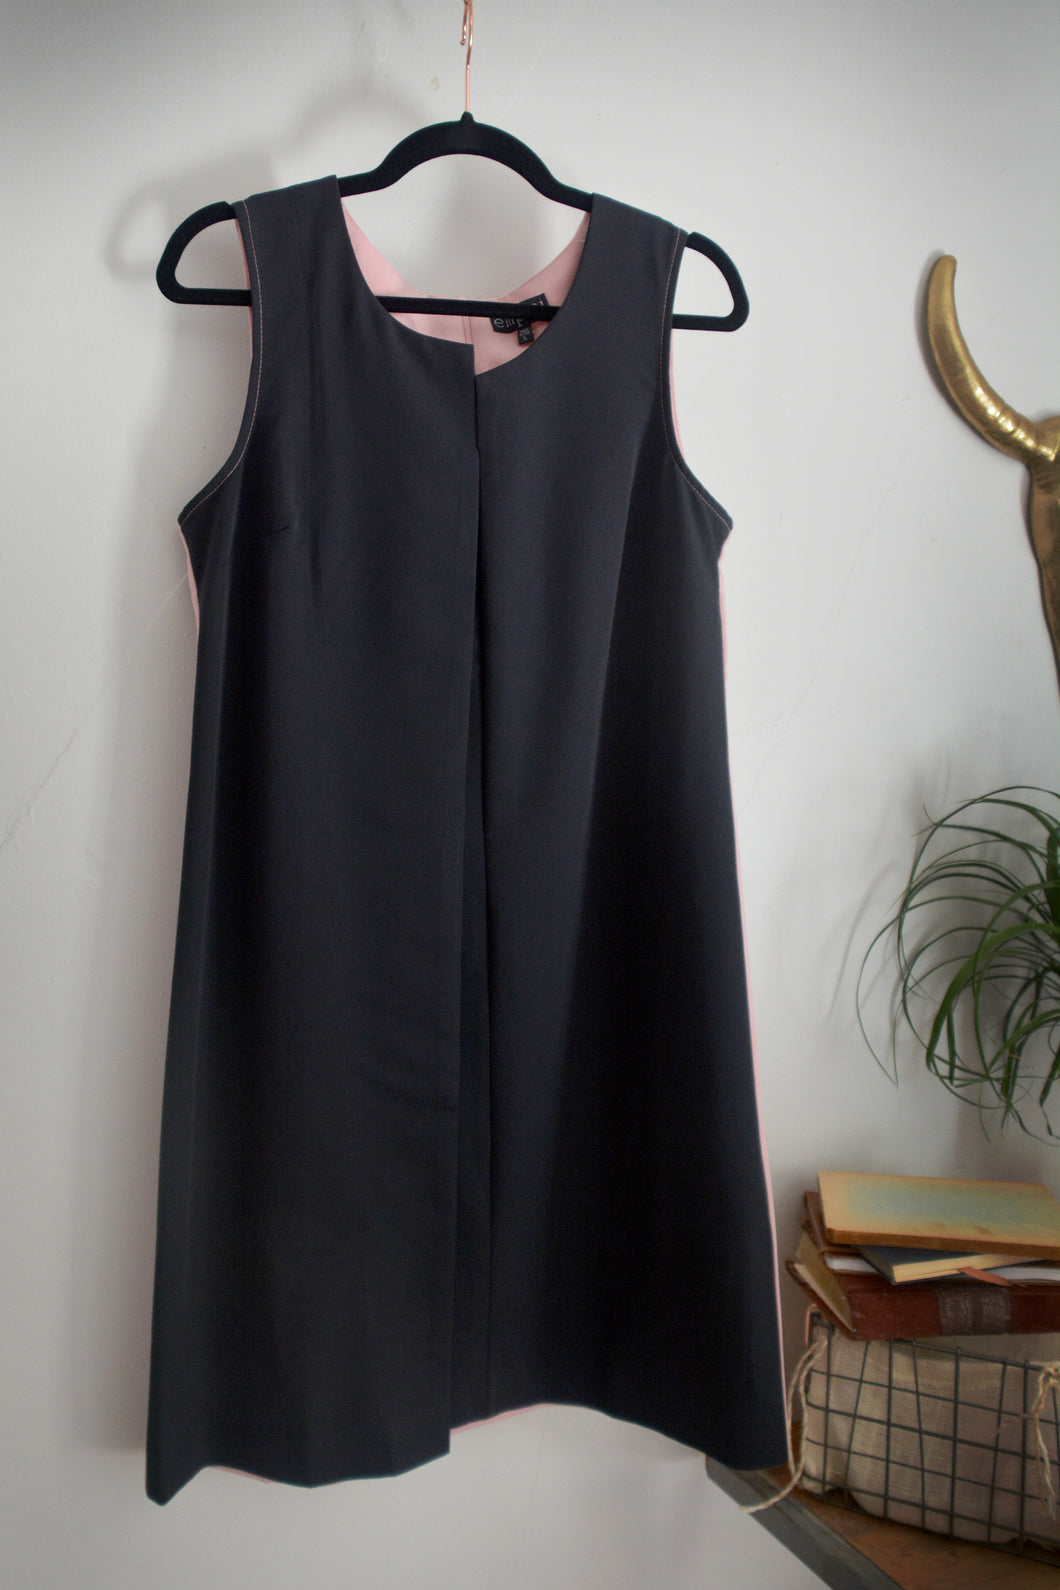 Black and Pink Dress by Emploi